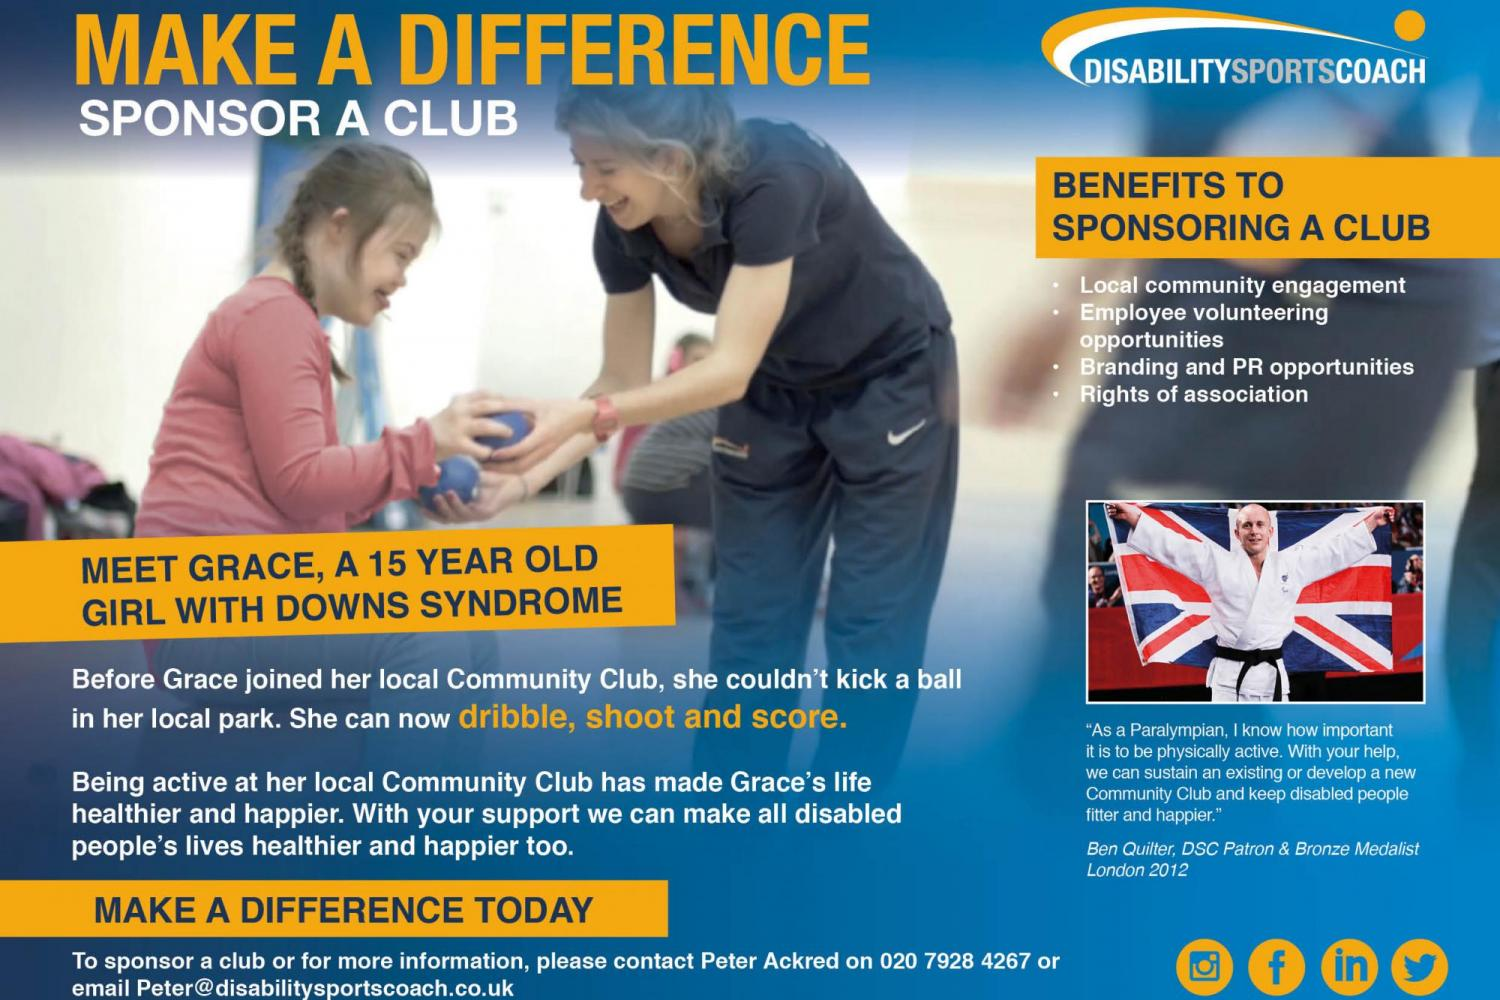 DSC Sponsor a club - make a difference